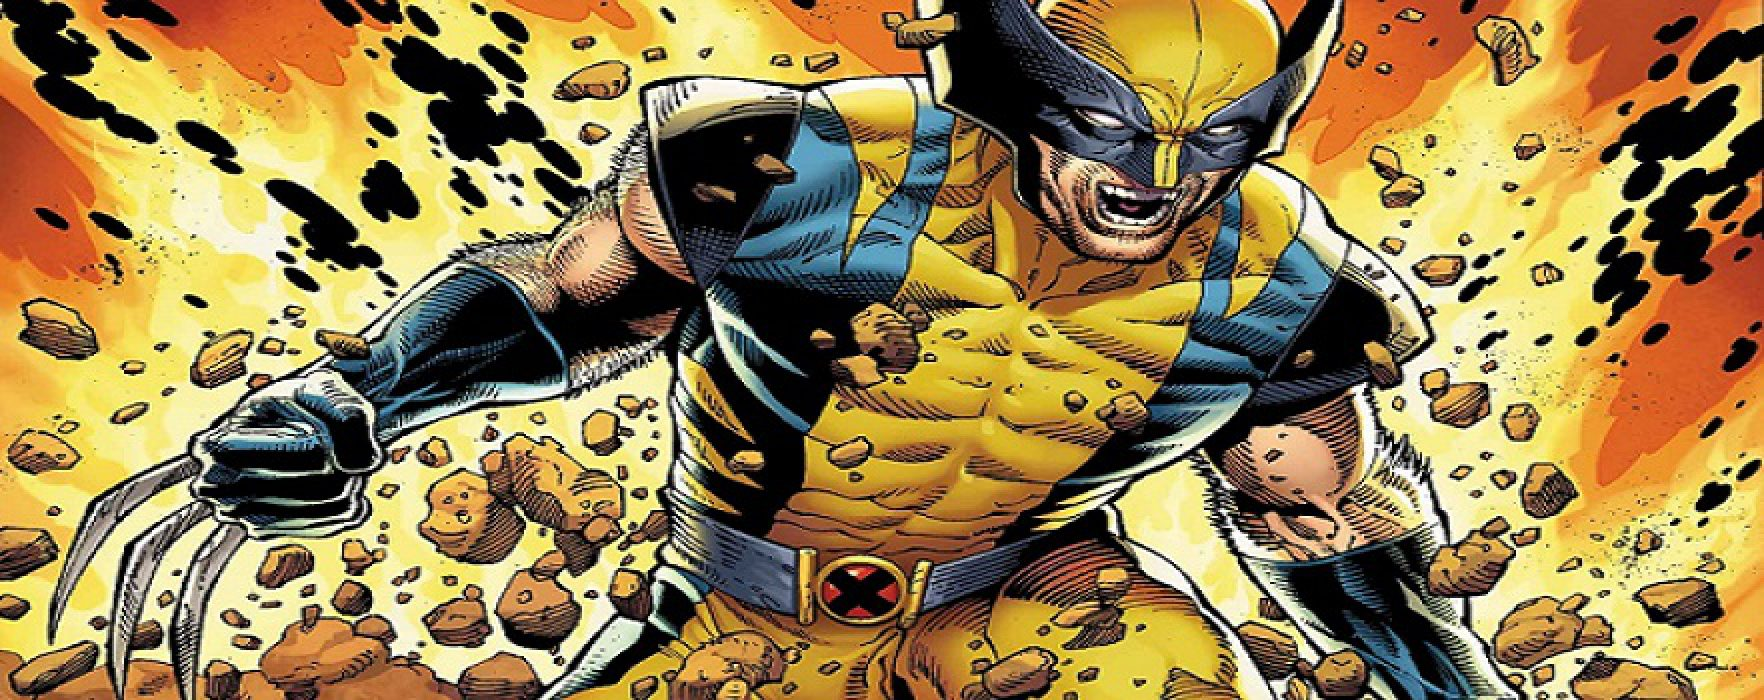 Marvel Comics Announces Return of Wolverine